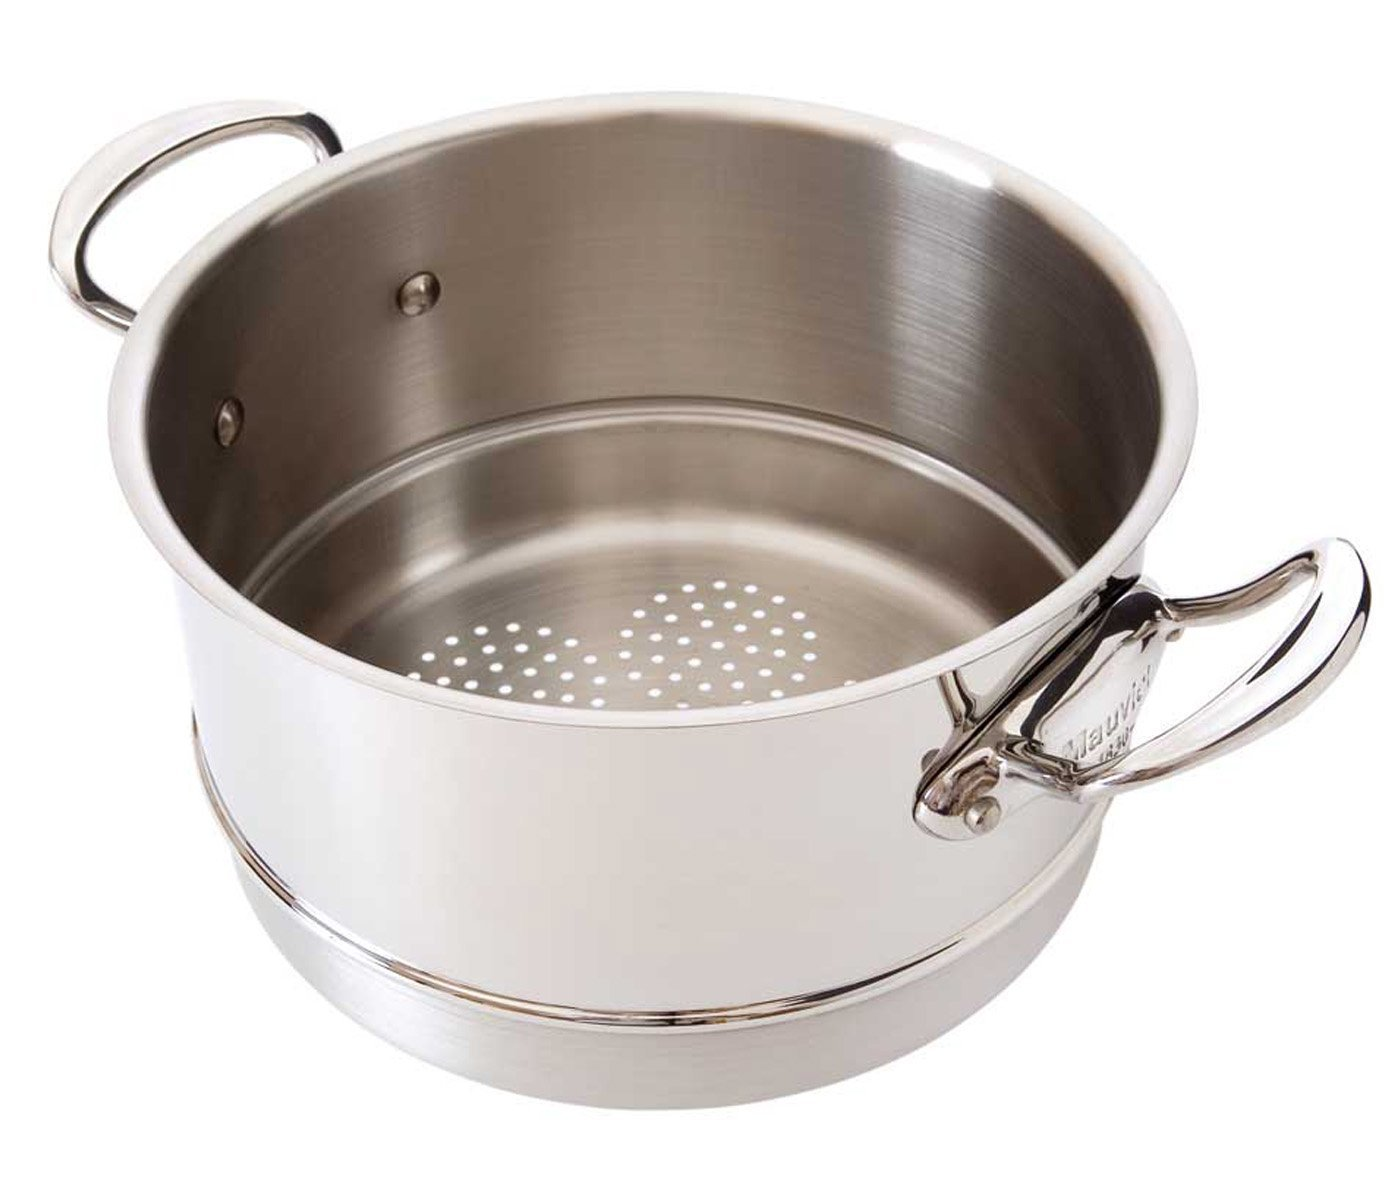 Mauviel Made In France M'Cook 5 Ply Stainless Steel 5221.24 9.5 Inch Steamer Insert, Cast Stainless Steel Handle